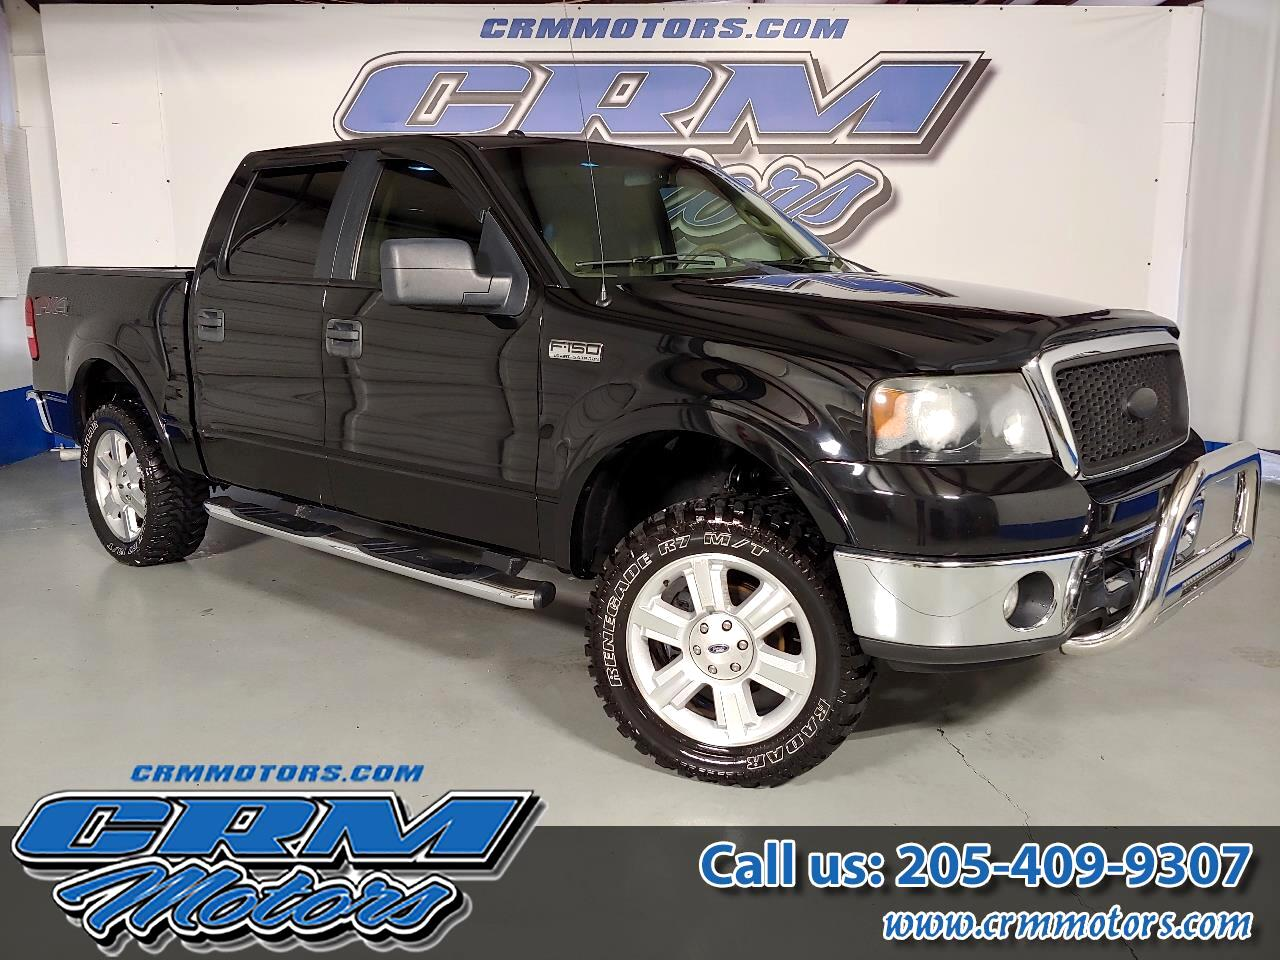 2007 Ford F-150 4WD SUPERCREW LARTIAT WITH ALL TERRAIN TIRES!